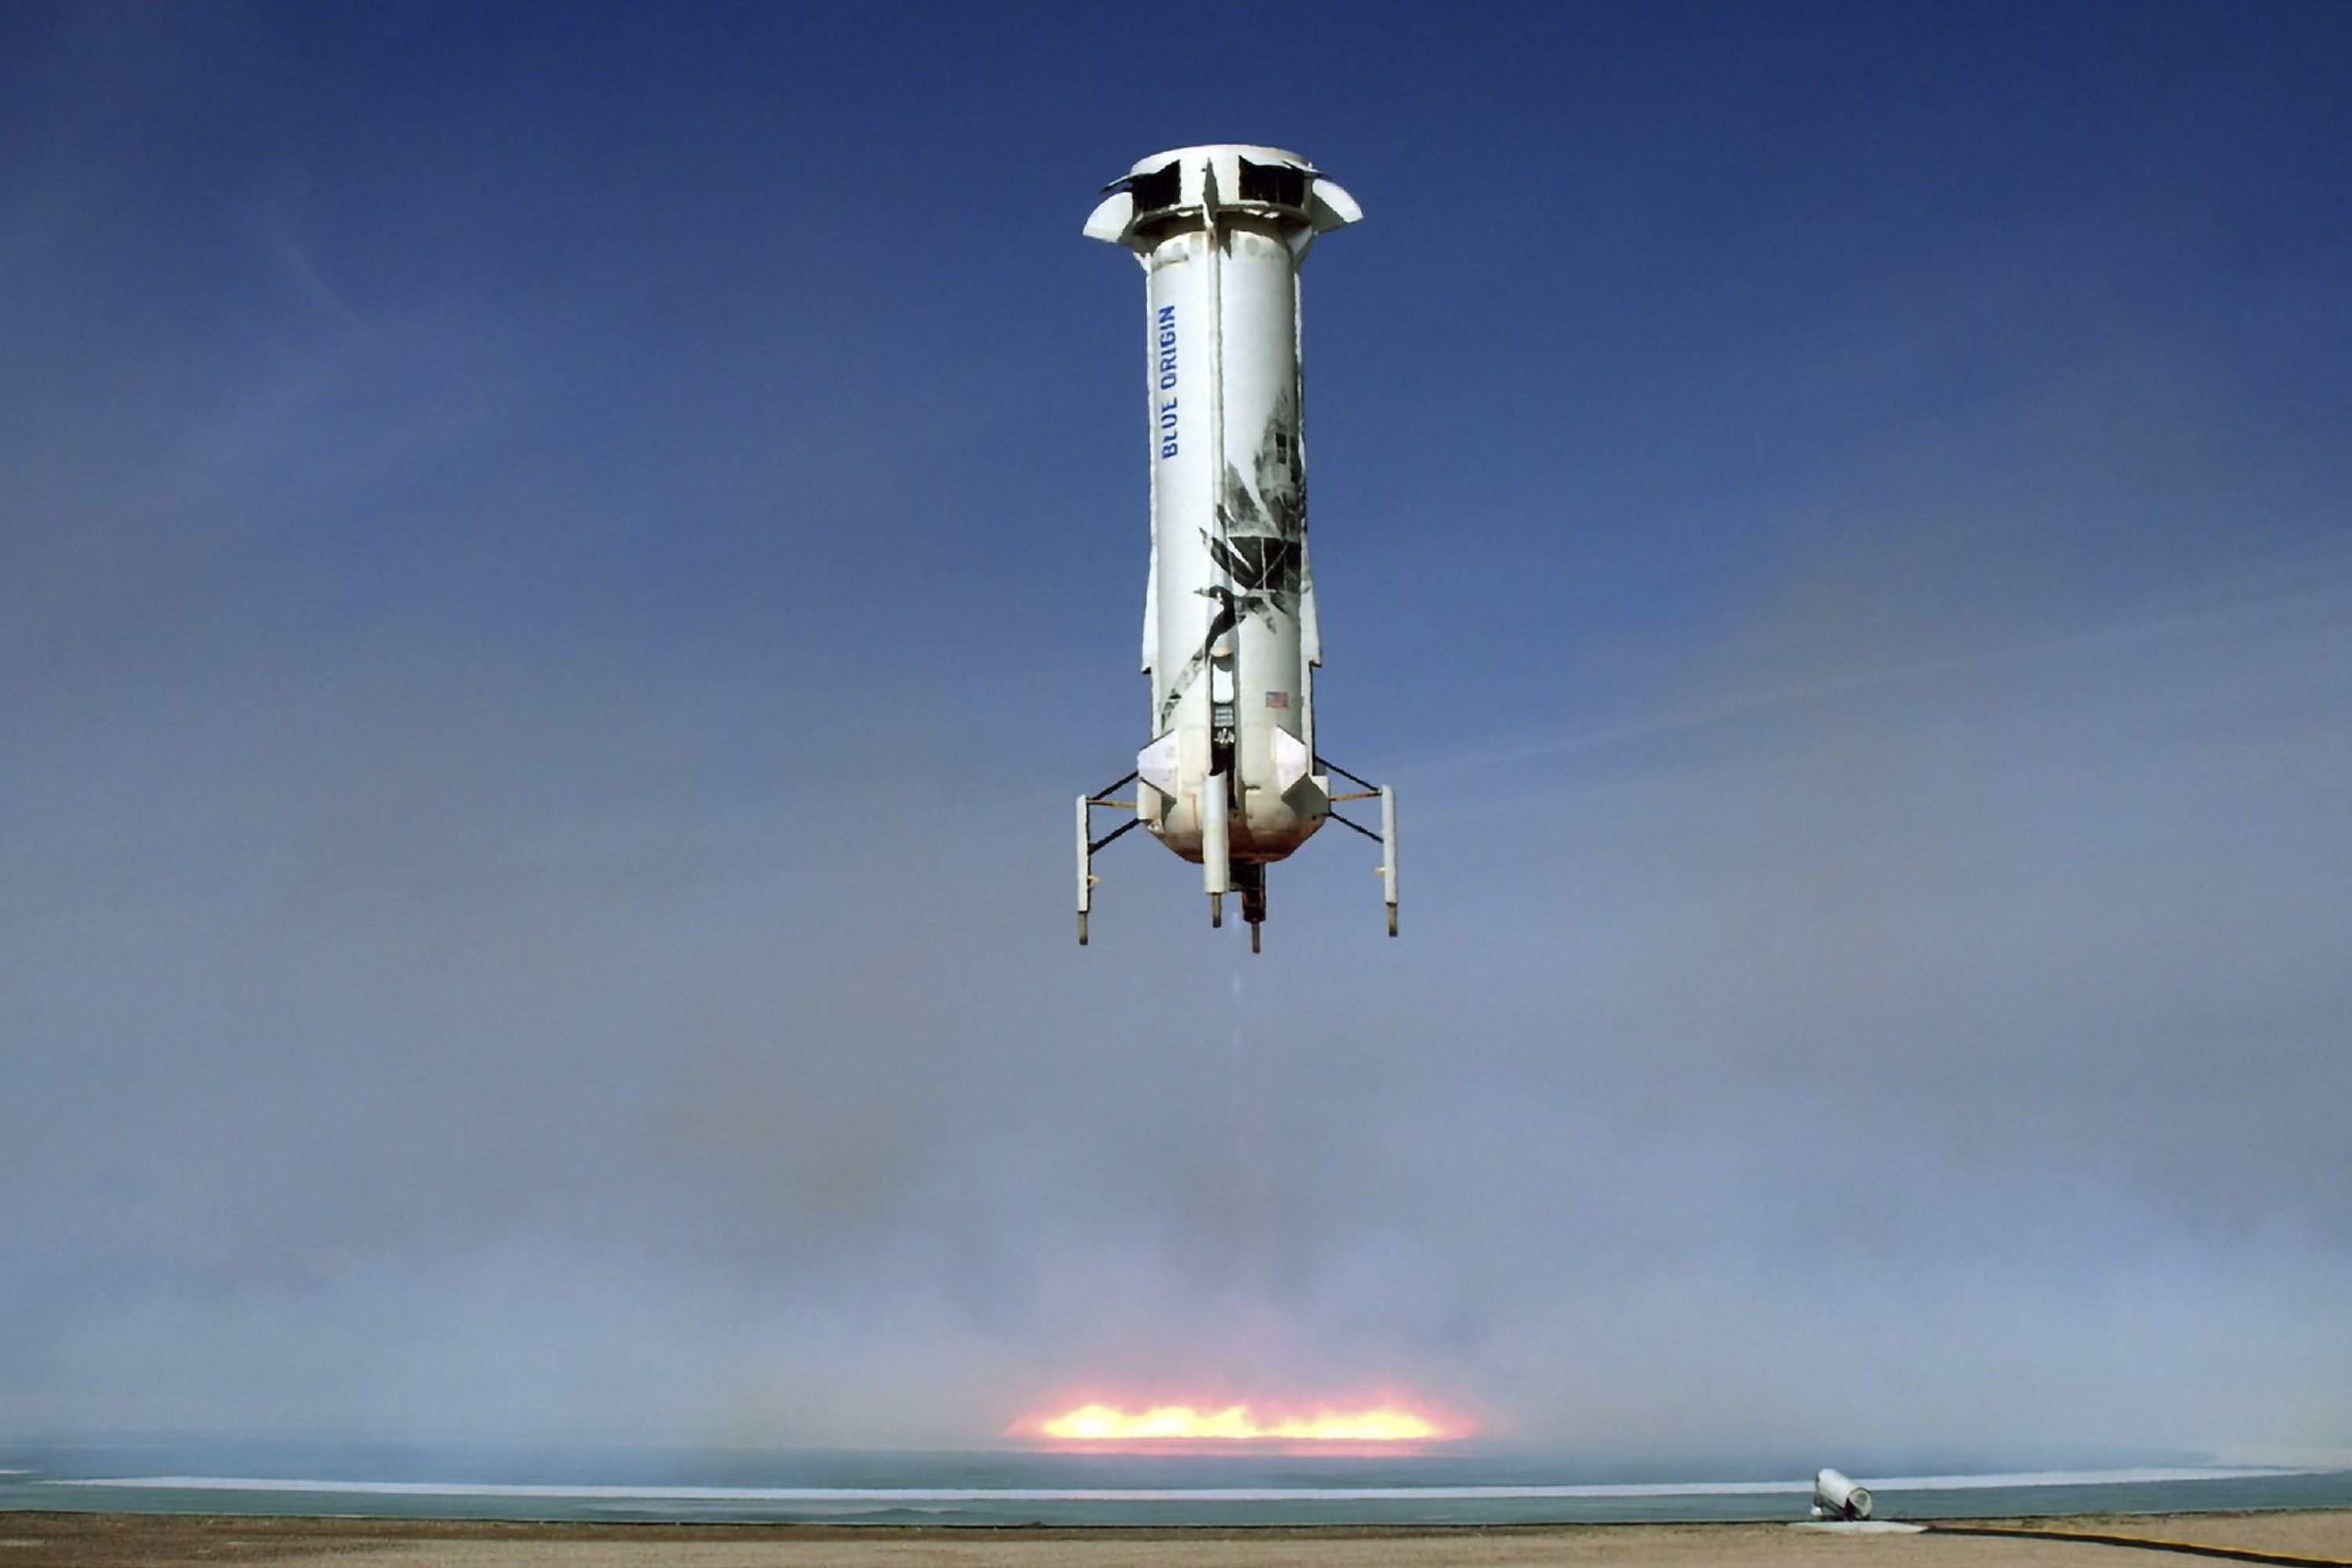 Blue Origin Launches Lands Same Rocket Record 6 Times